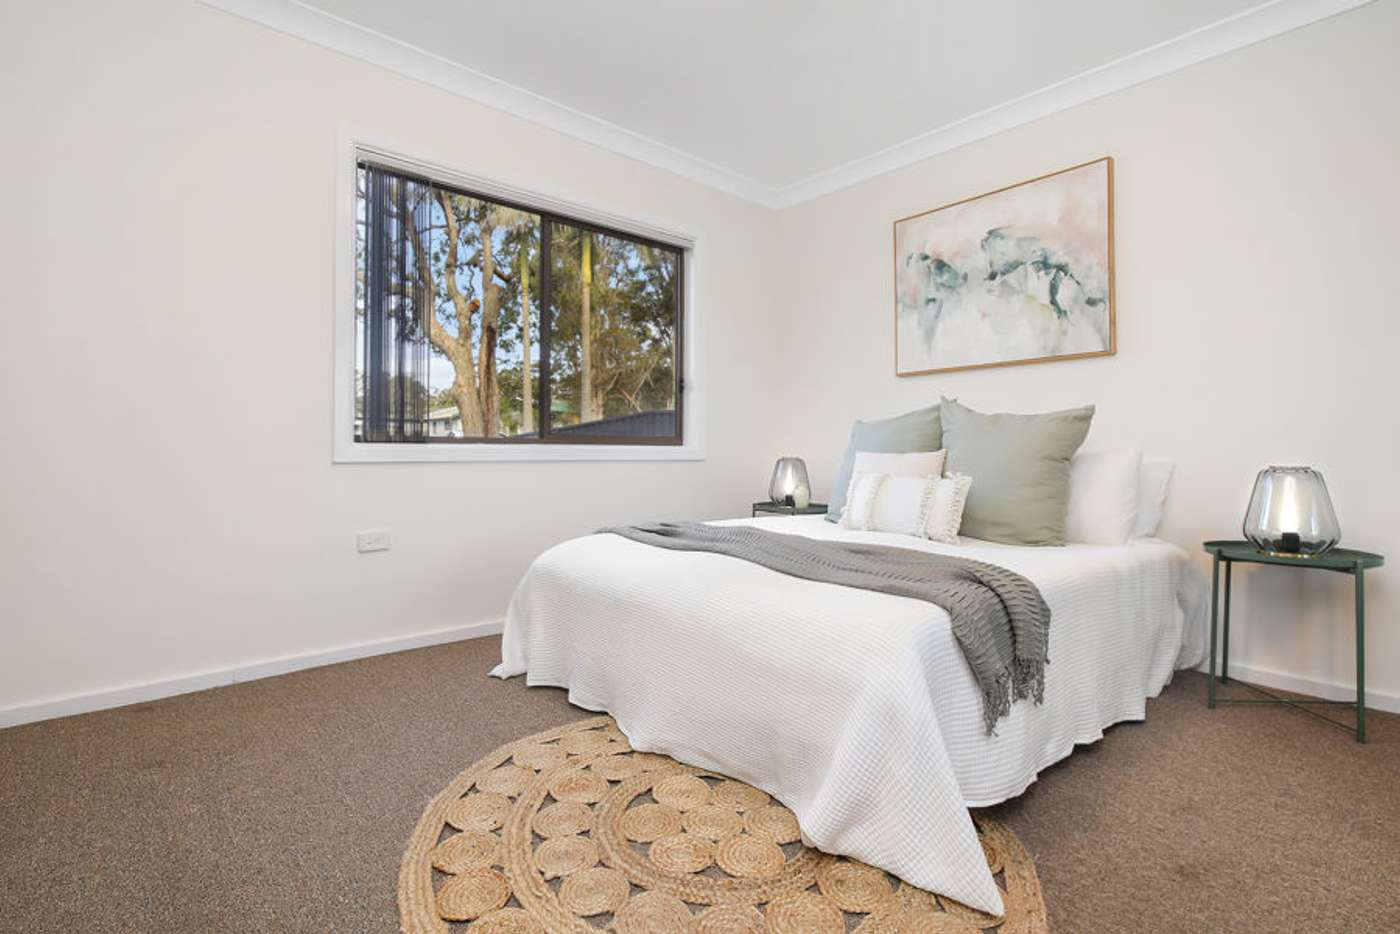 Fifth view of Homely house listing, 97 Cams Boulevard, Summerland Point NSW 2259